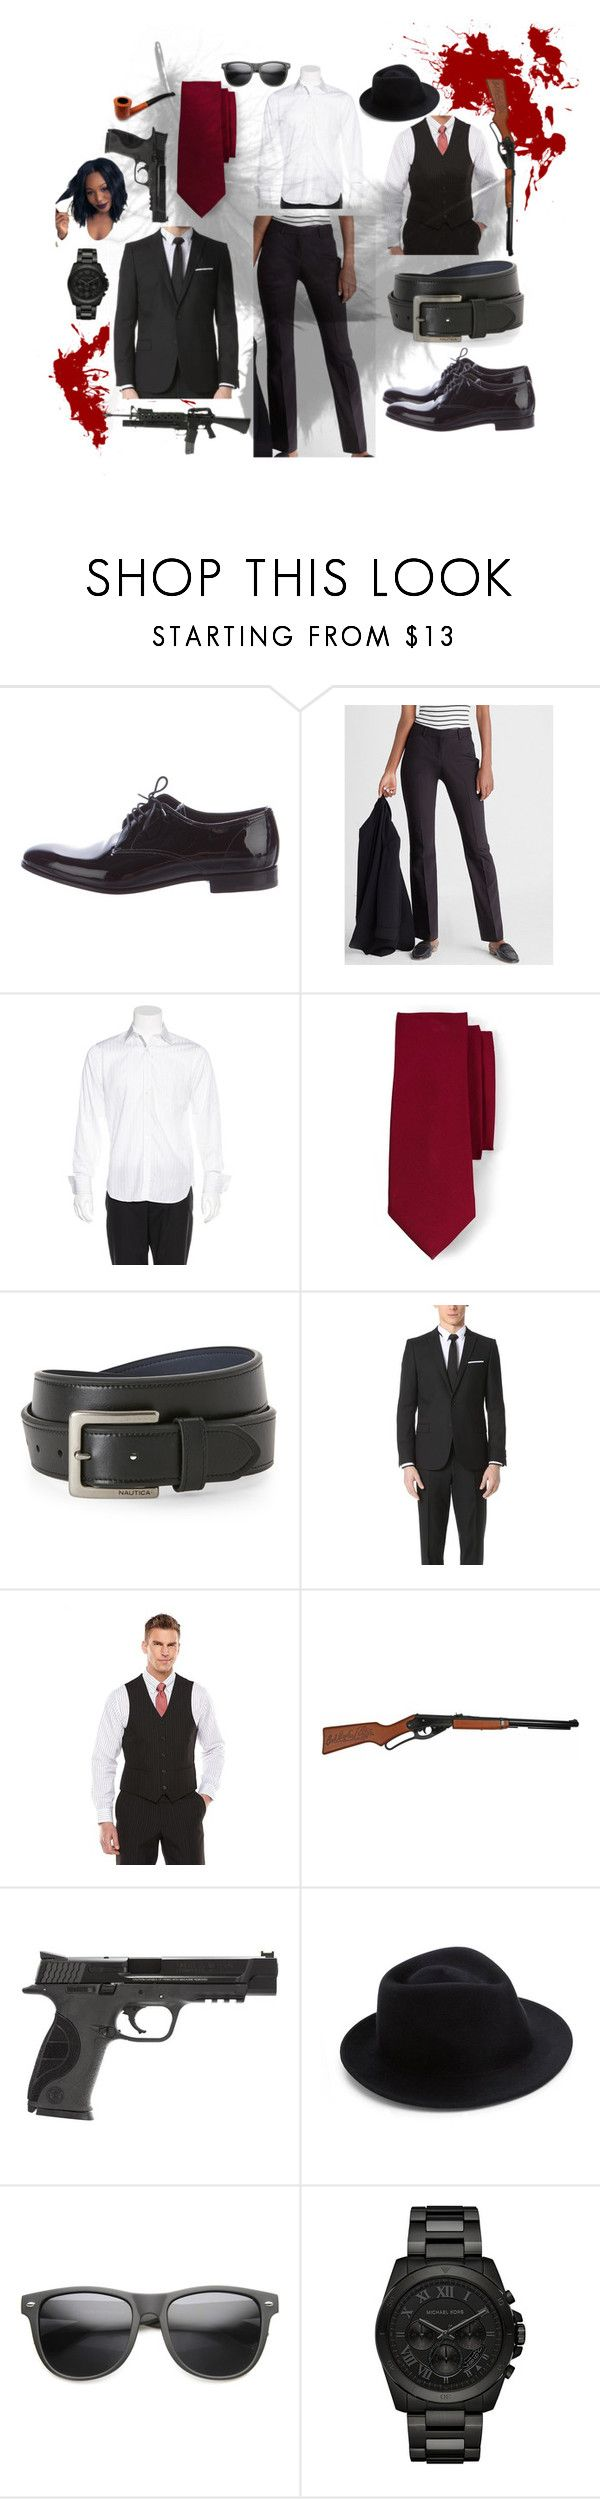 """""""1920's inspired Gangster outfit #2"""" by leximccoy01 on Polyvore featuring Prada, Express, Michael Kors, Lands' End, Nautica, The Kooples, Savile Row, Smith & Wesson, Eugenia Kim and ZeroUV"""